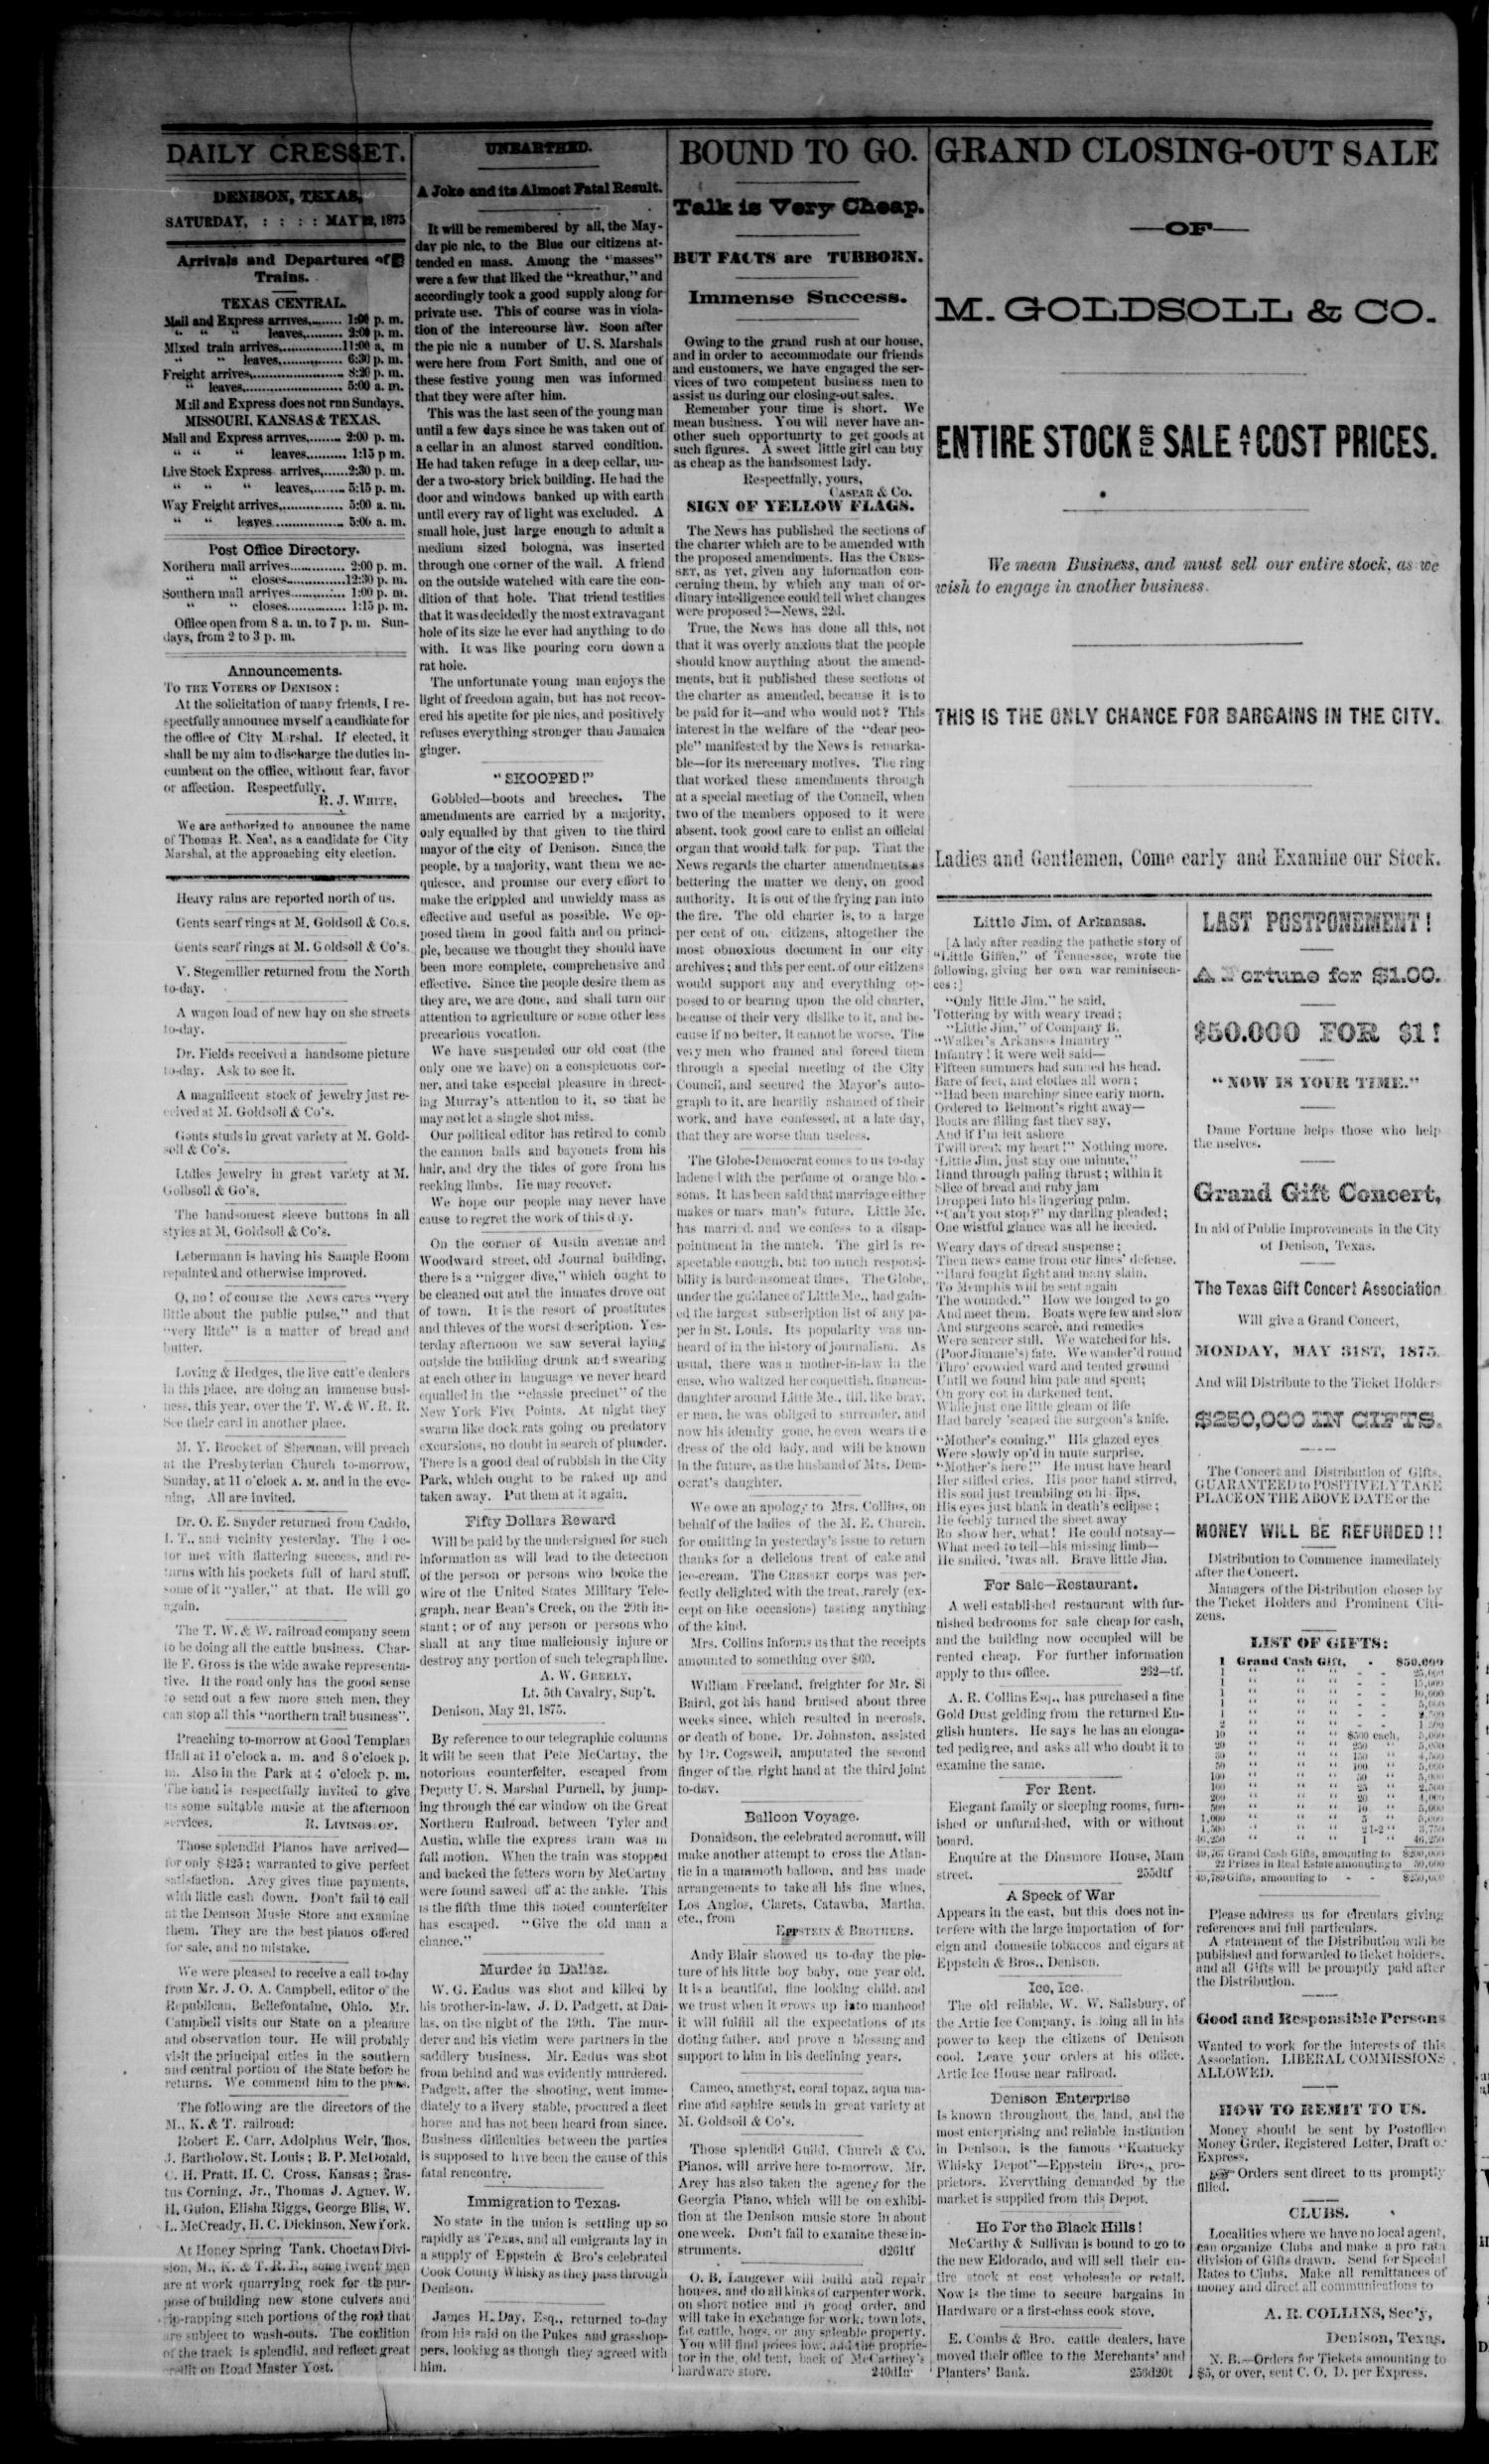 Denison Daily Cresset. (Denison, Tex.), Vol. 1, No. 263, Ed. 1 Saturday, May 22, 1875                                                                                                      [Sequence #]: 4 of 4